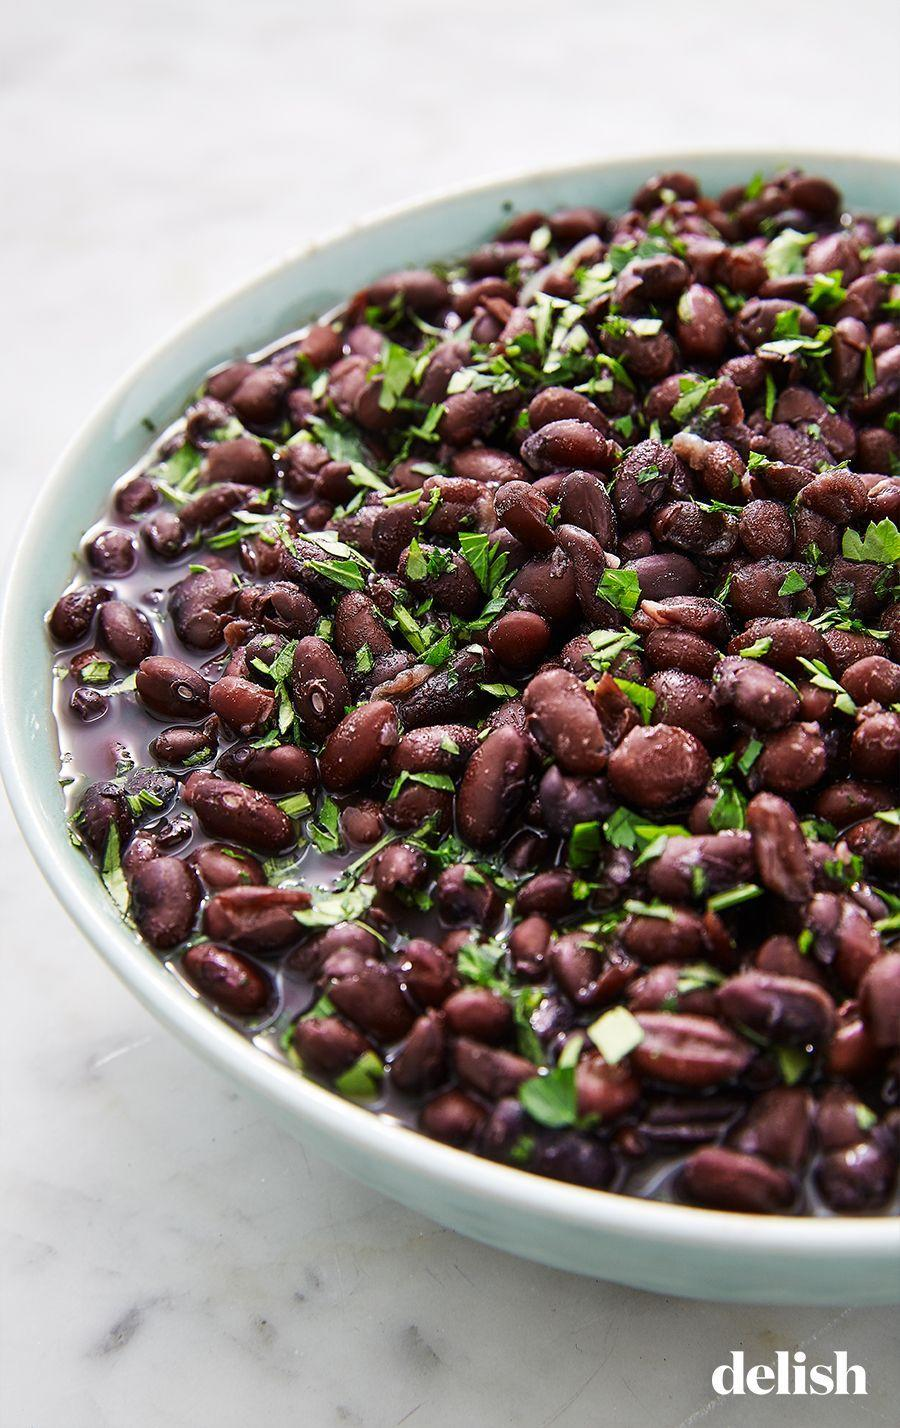 """<p>Unsure how to best prepare black beans from scratch? Look no further! Here's a primer to get you started.</p><p>Get the recipe from <a href=""""https://www.delish.com/cooking/a25656923/how-to-cook-black-beans/"""" rel=""""nofollow noopener"""" target=""""_blank"""" data-ylk=""""slk:Delish."""" class=""""link rapid-noclick-resp"""">Delish.</a></p>"""